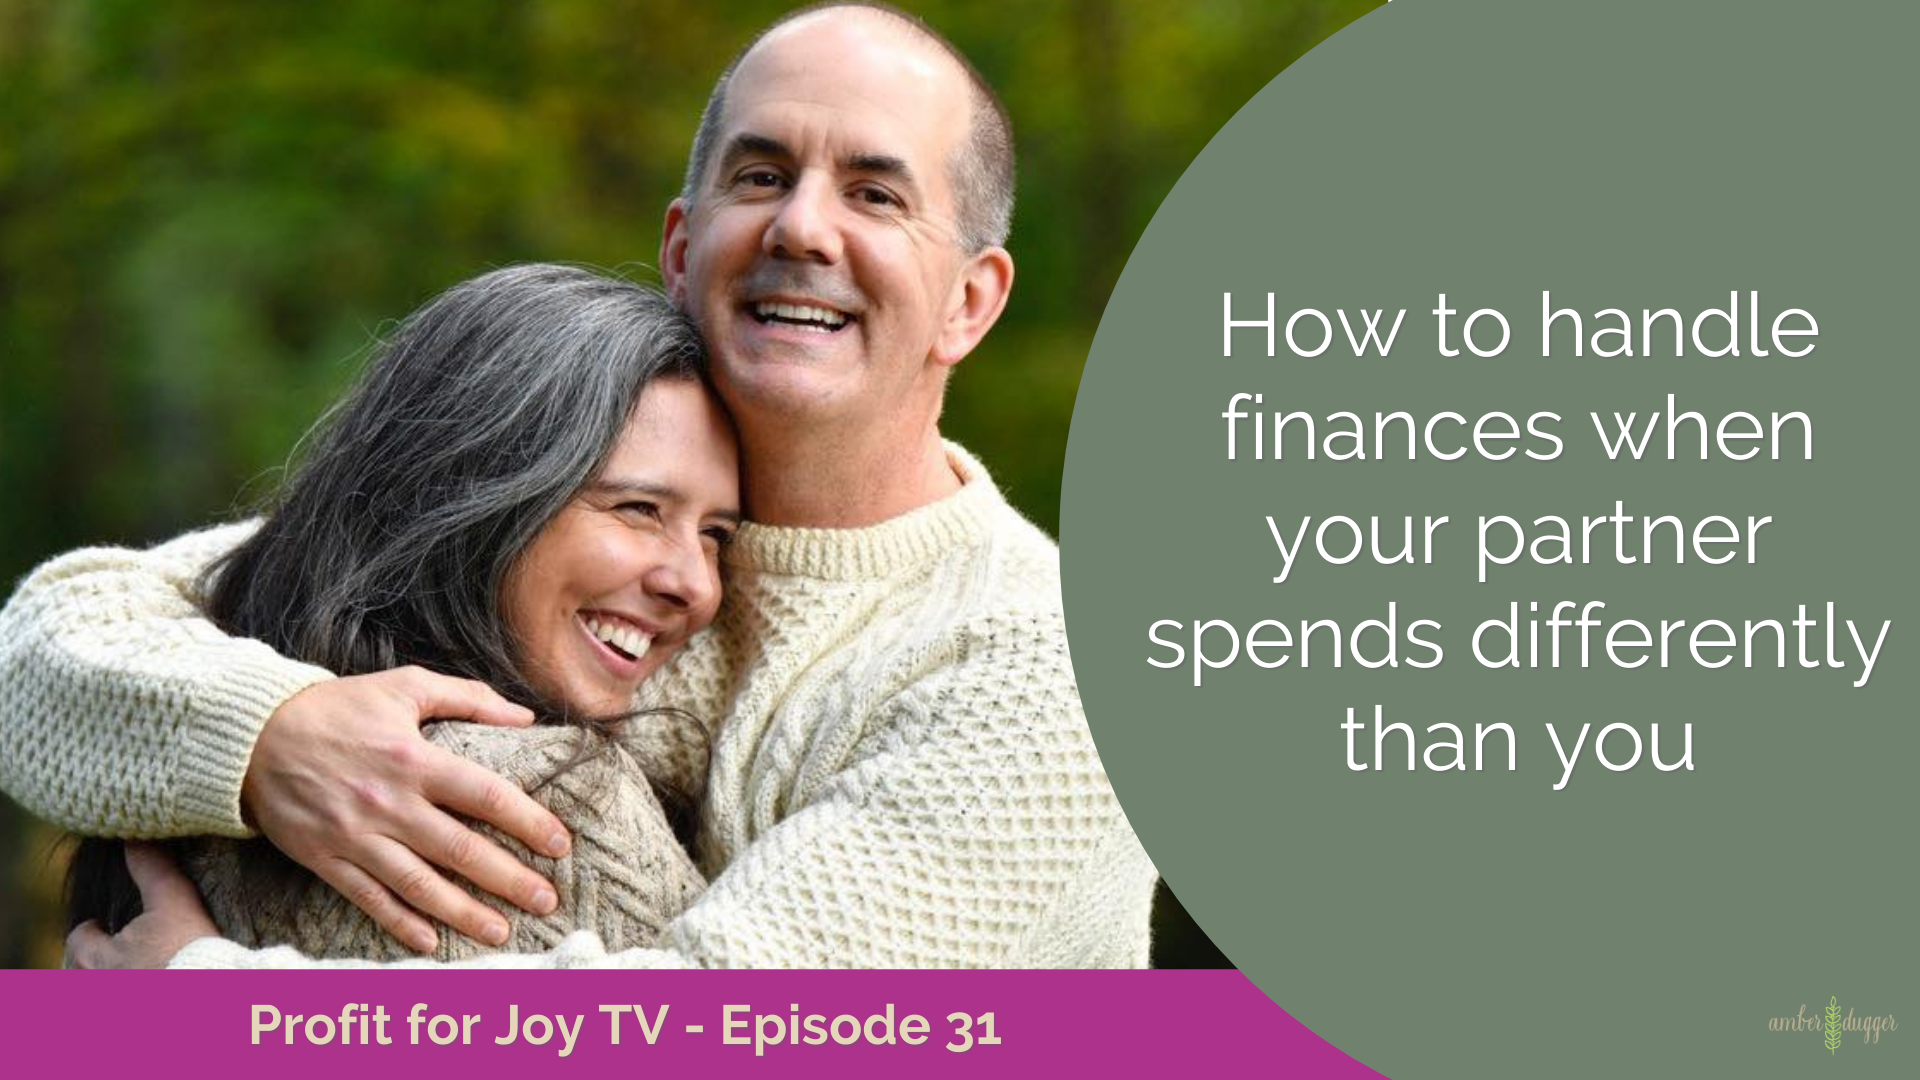 How to handle finances when your partner spends differently than you